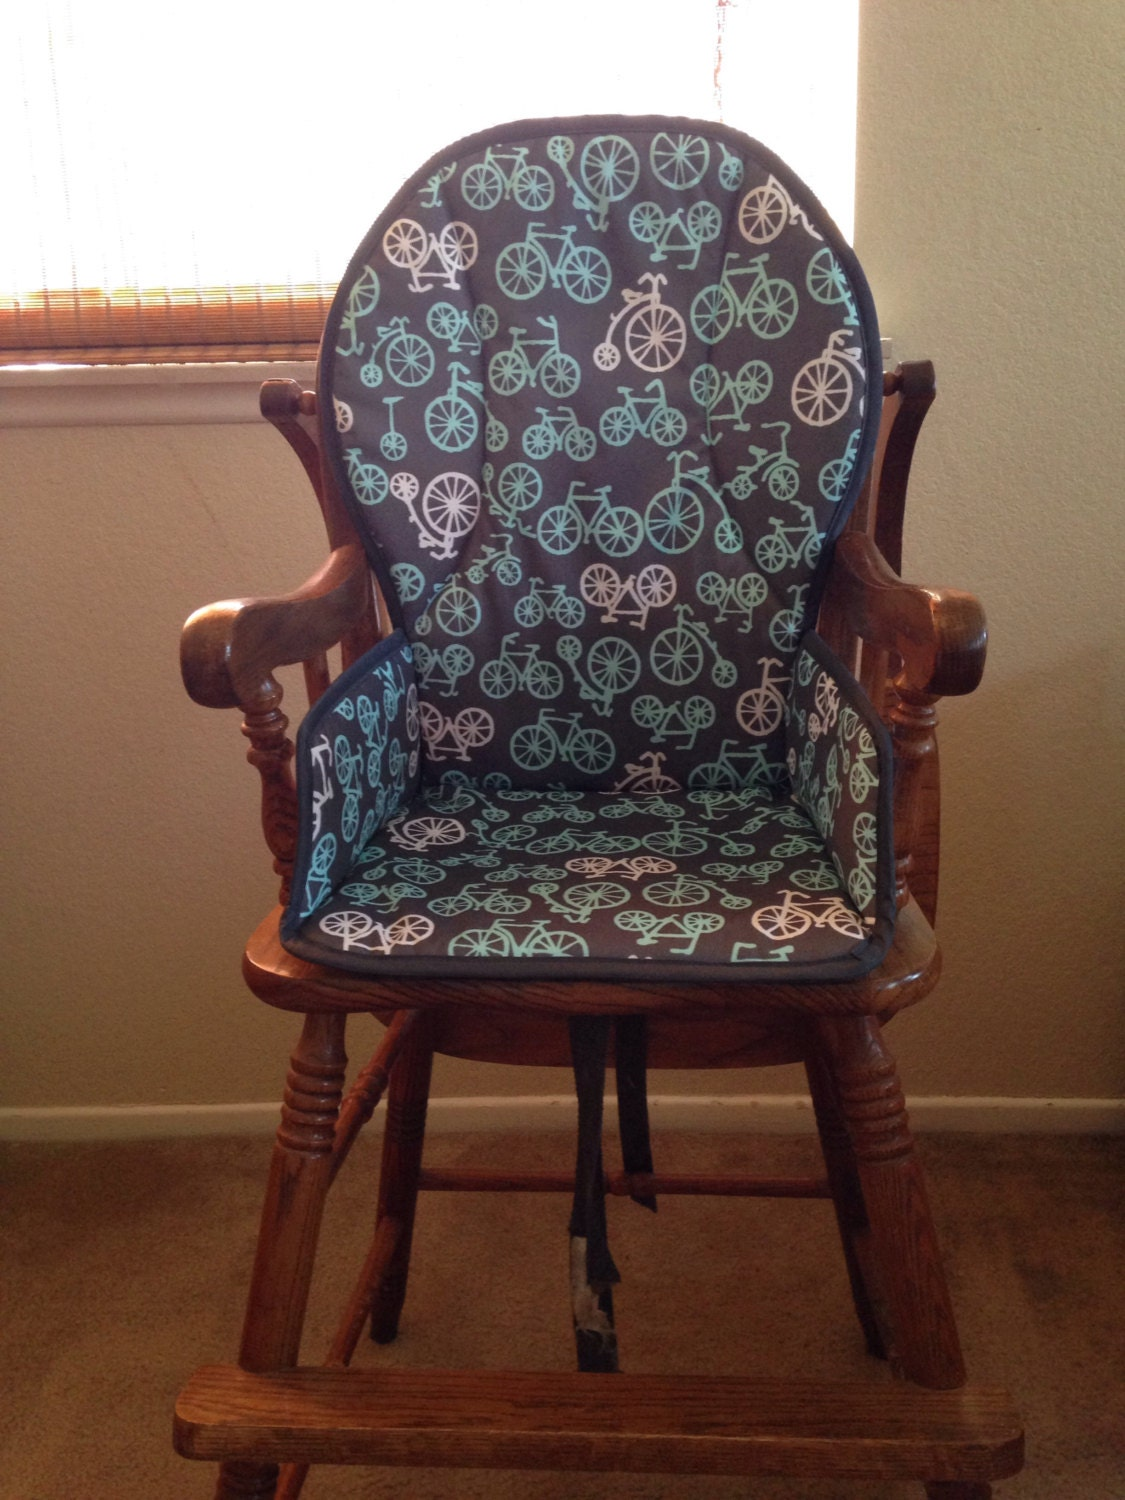 Wooden high chair cover design your own for Chair cover design